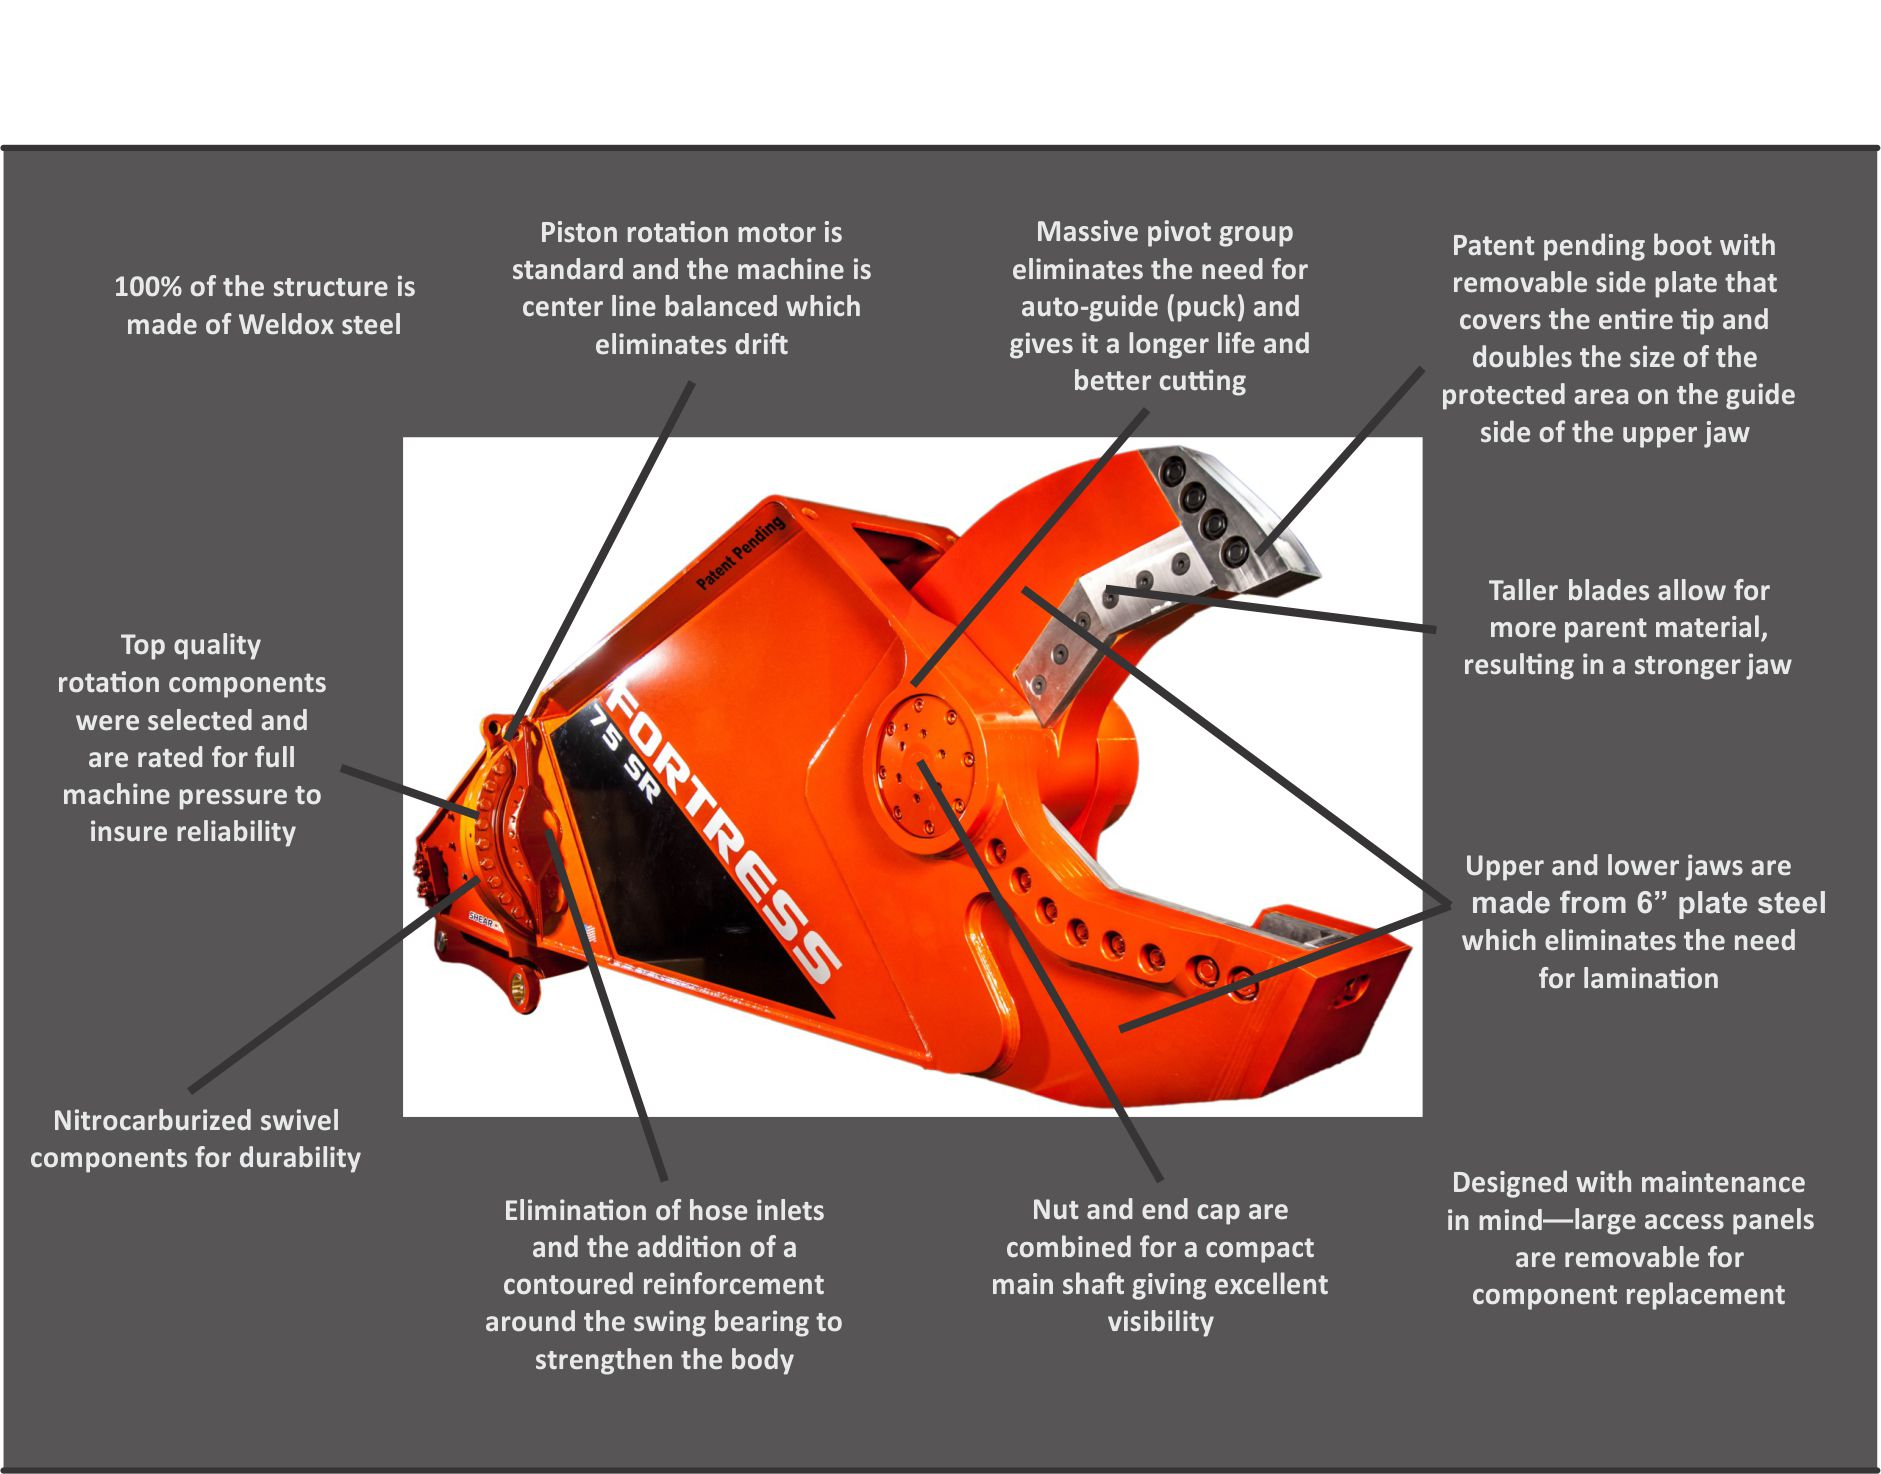 Benefits of Fortress mobile shear attachments